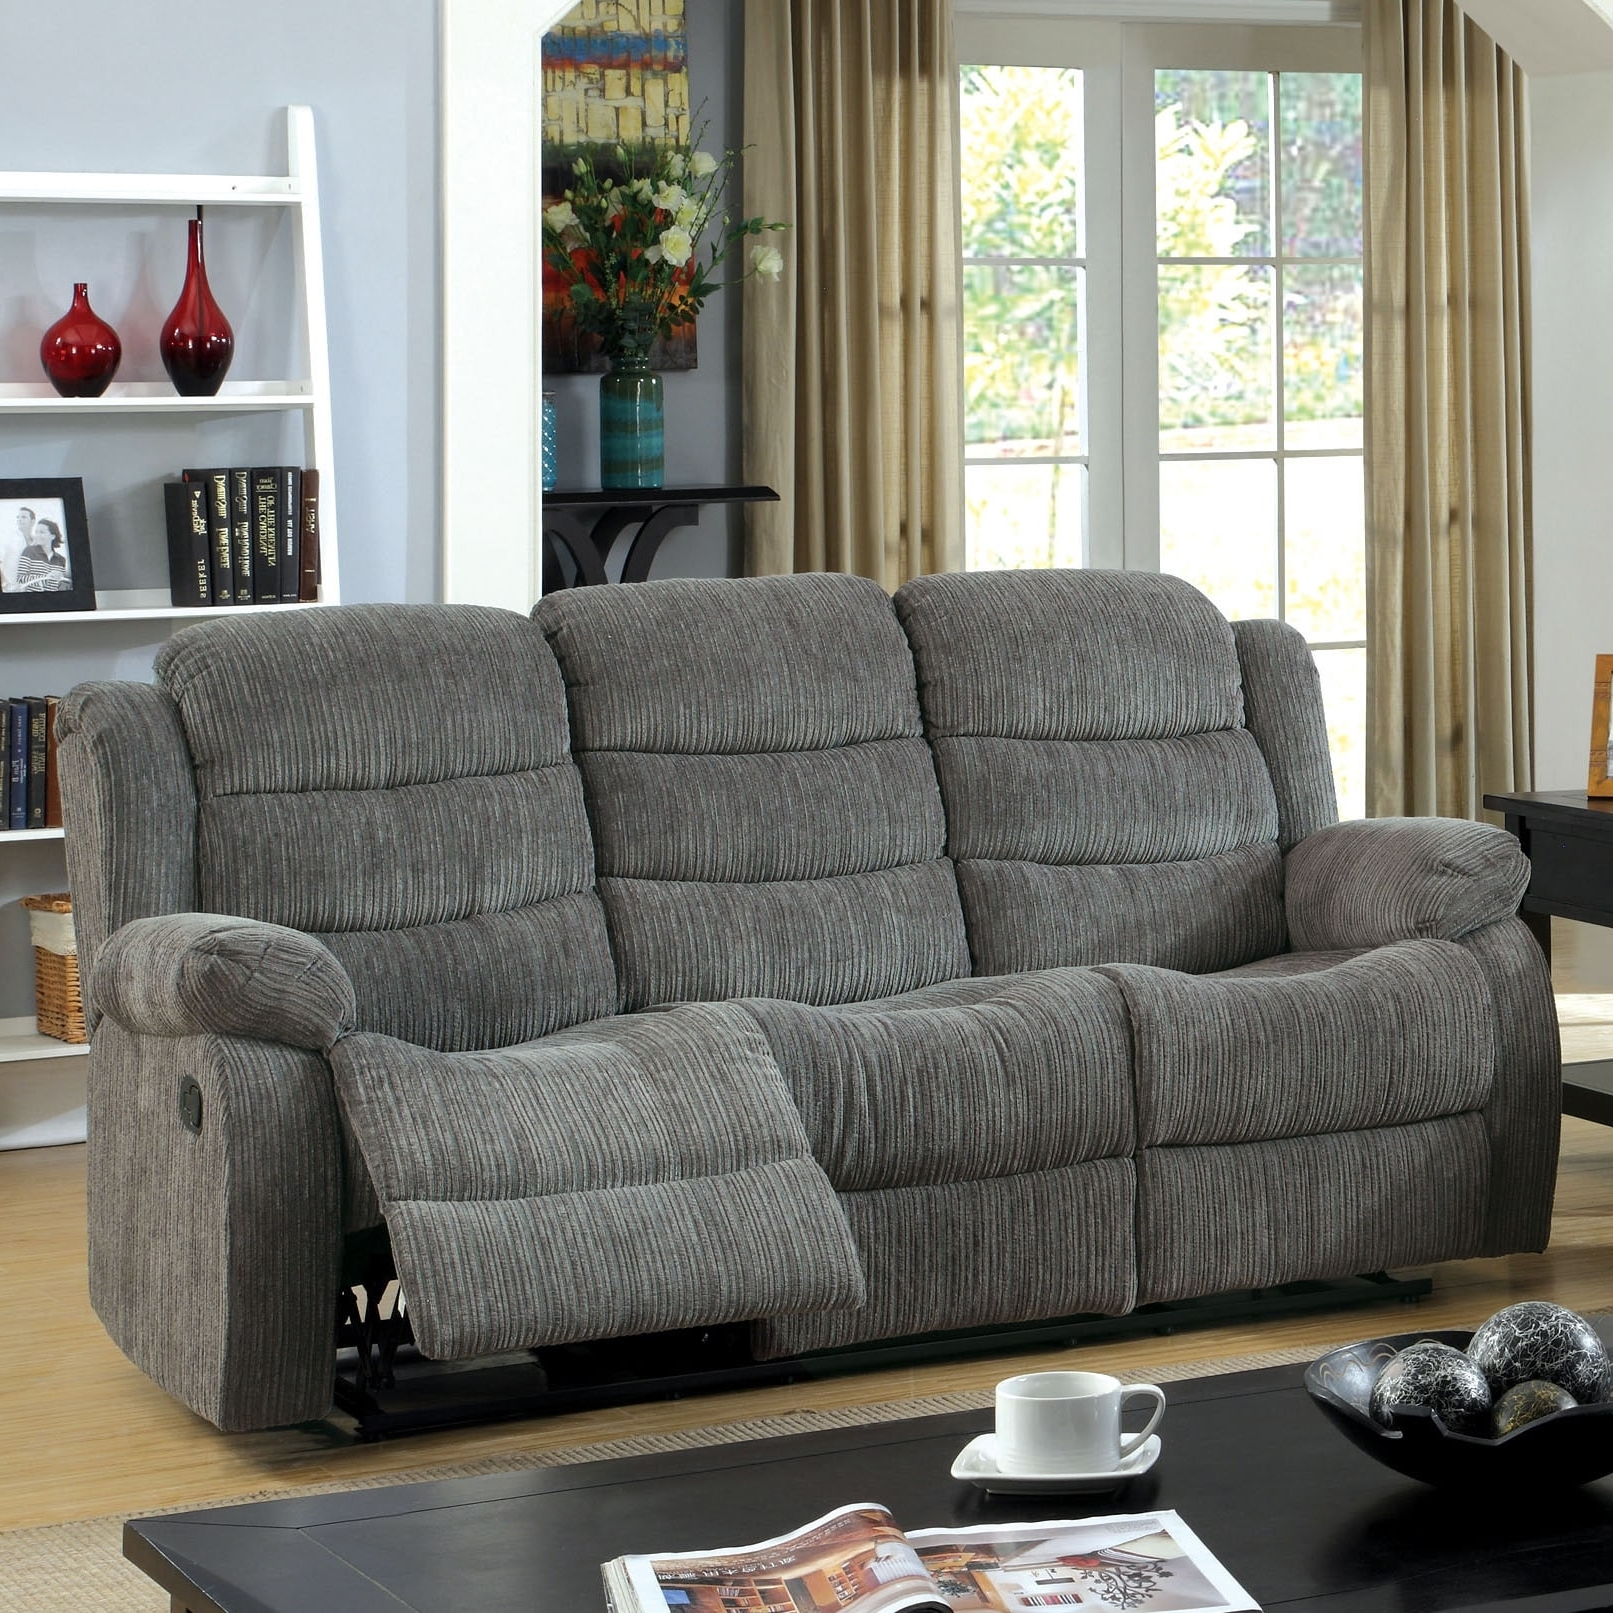 Recent American Furniture Warehouse Greensboro Nc Fresh Fresh Sectional Throughout Greensboro Nc Sectional Sofas (Gallery 13 of 20)